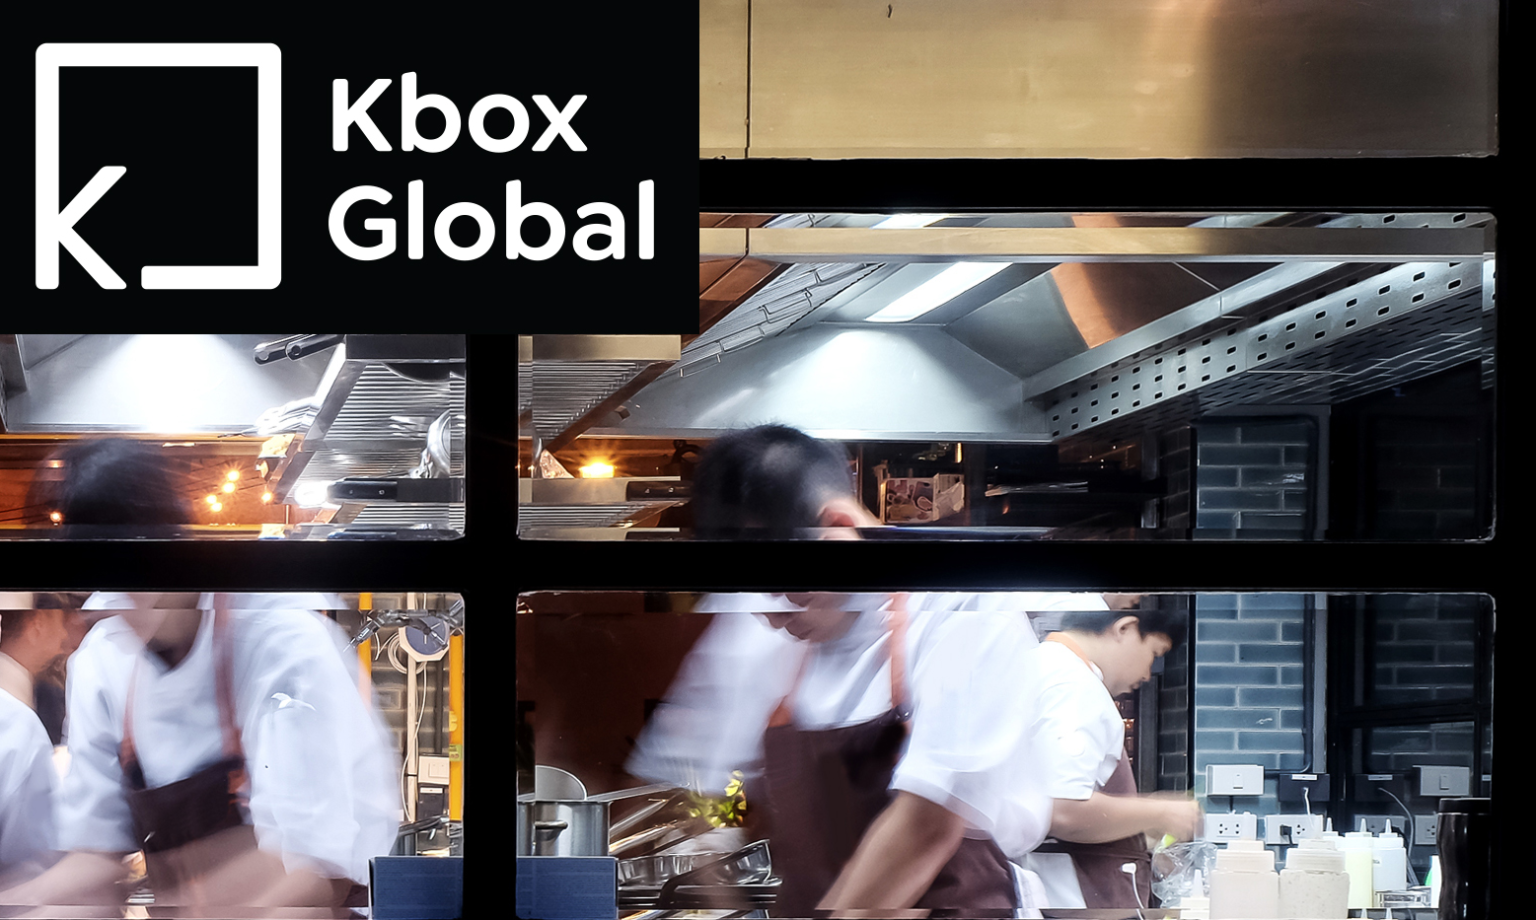 Kbox picks up £12M additional funding to let underused commercial kitchens do takeout for delivery